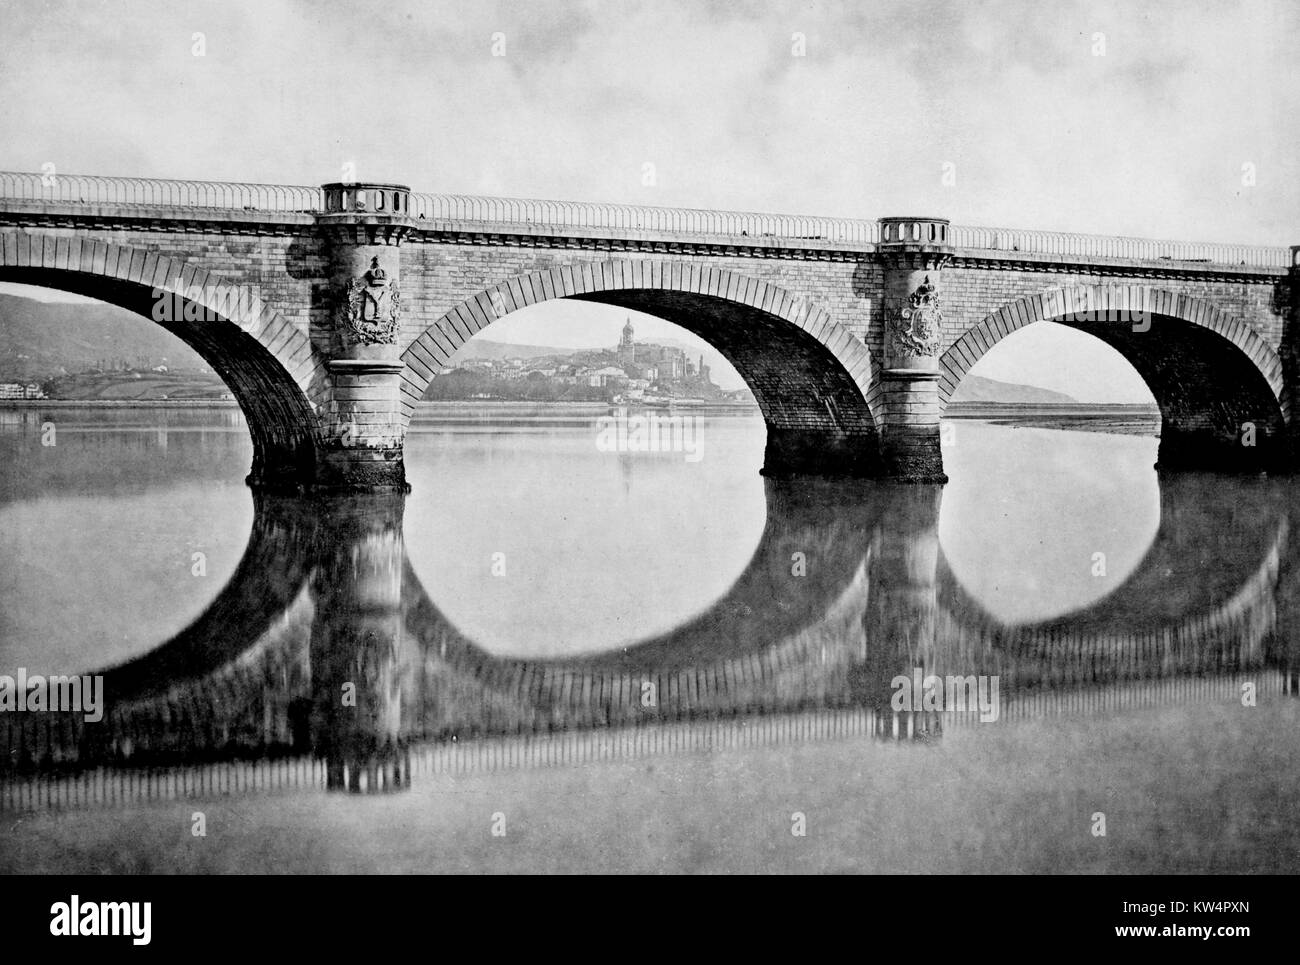 Bridge over the Bidasoa, France, 1883. From the New York Public Library. - Stock Image